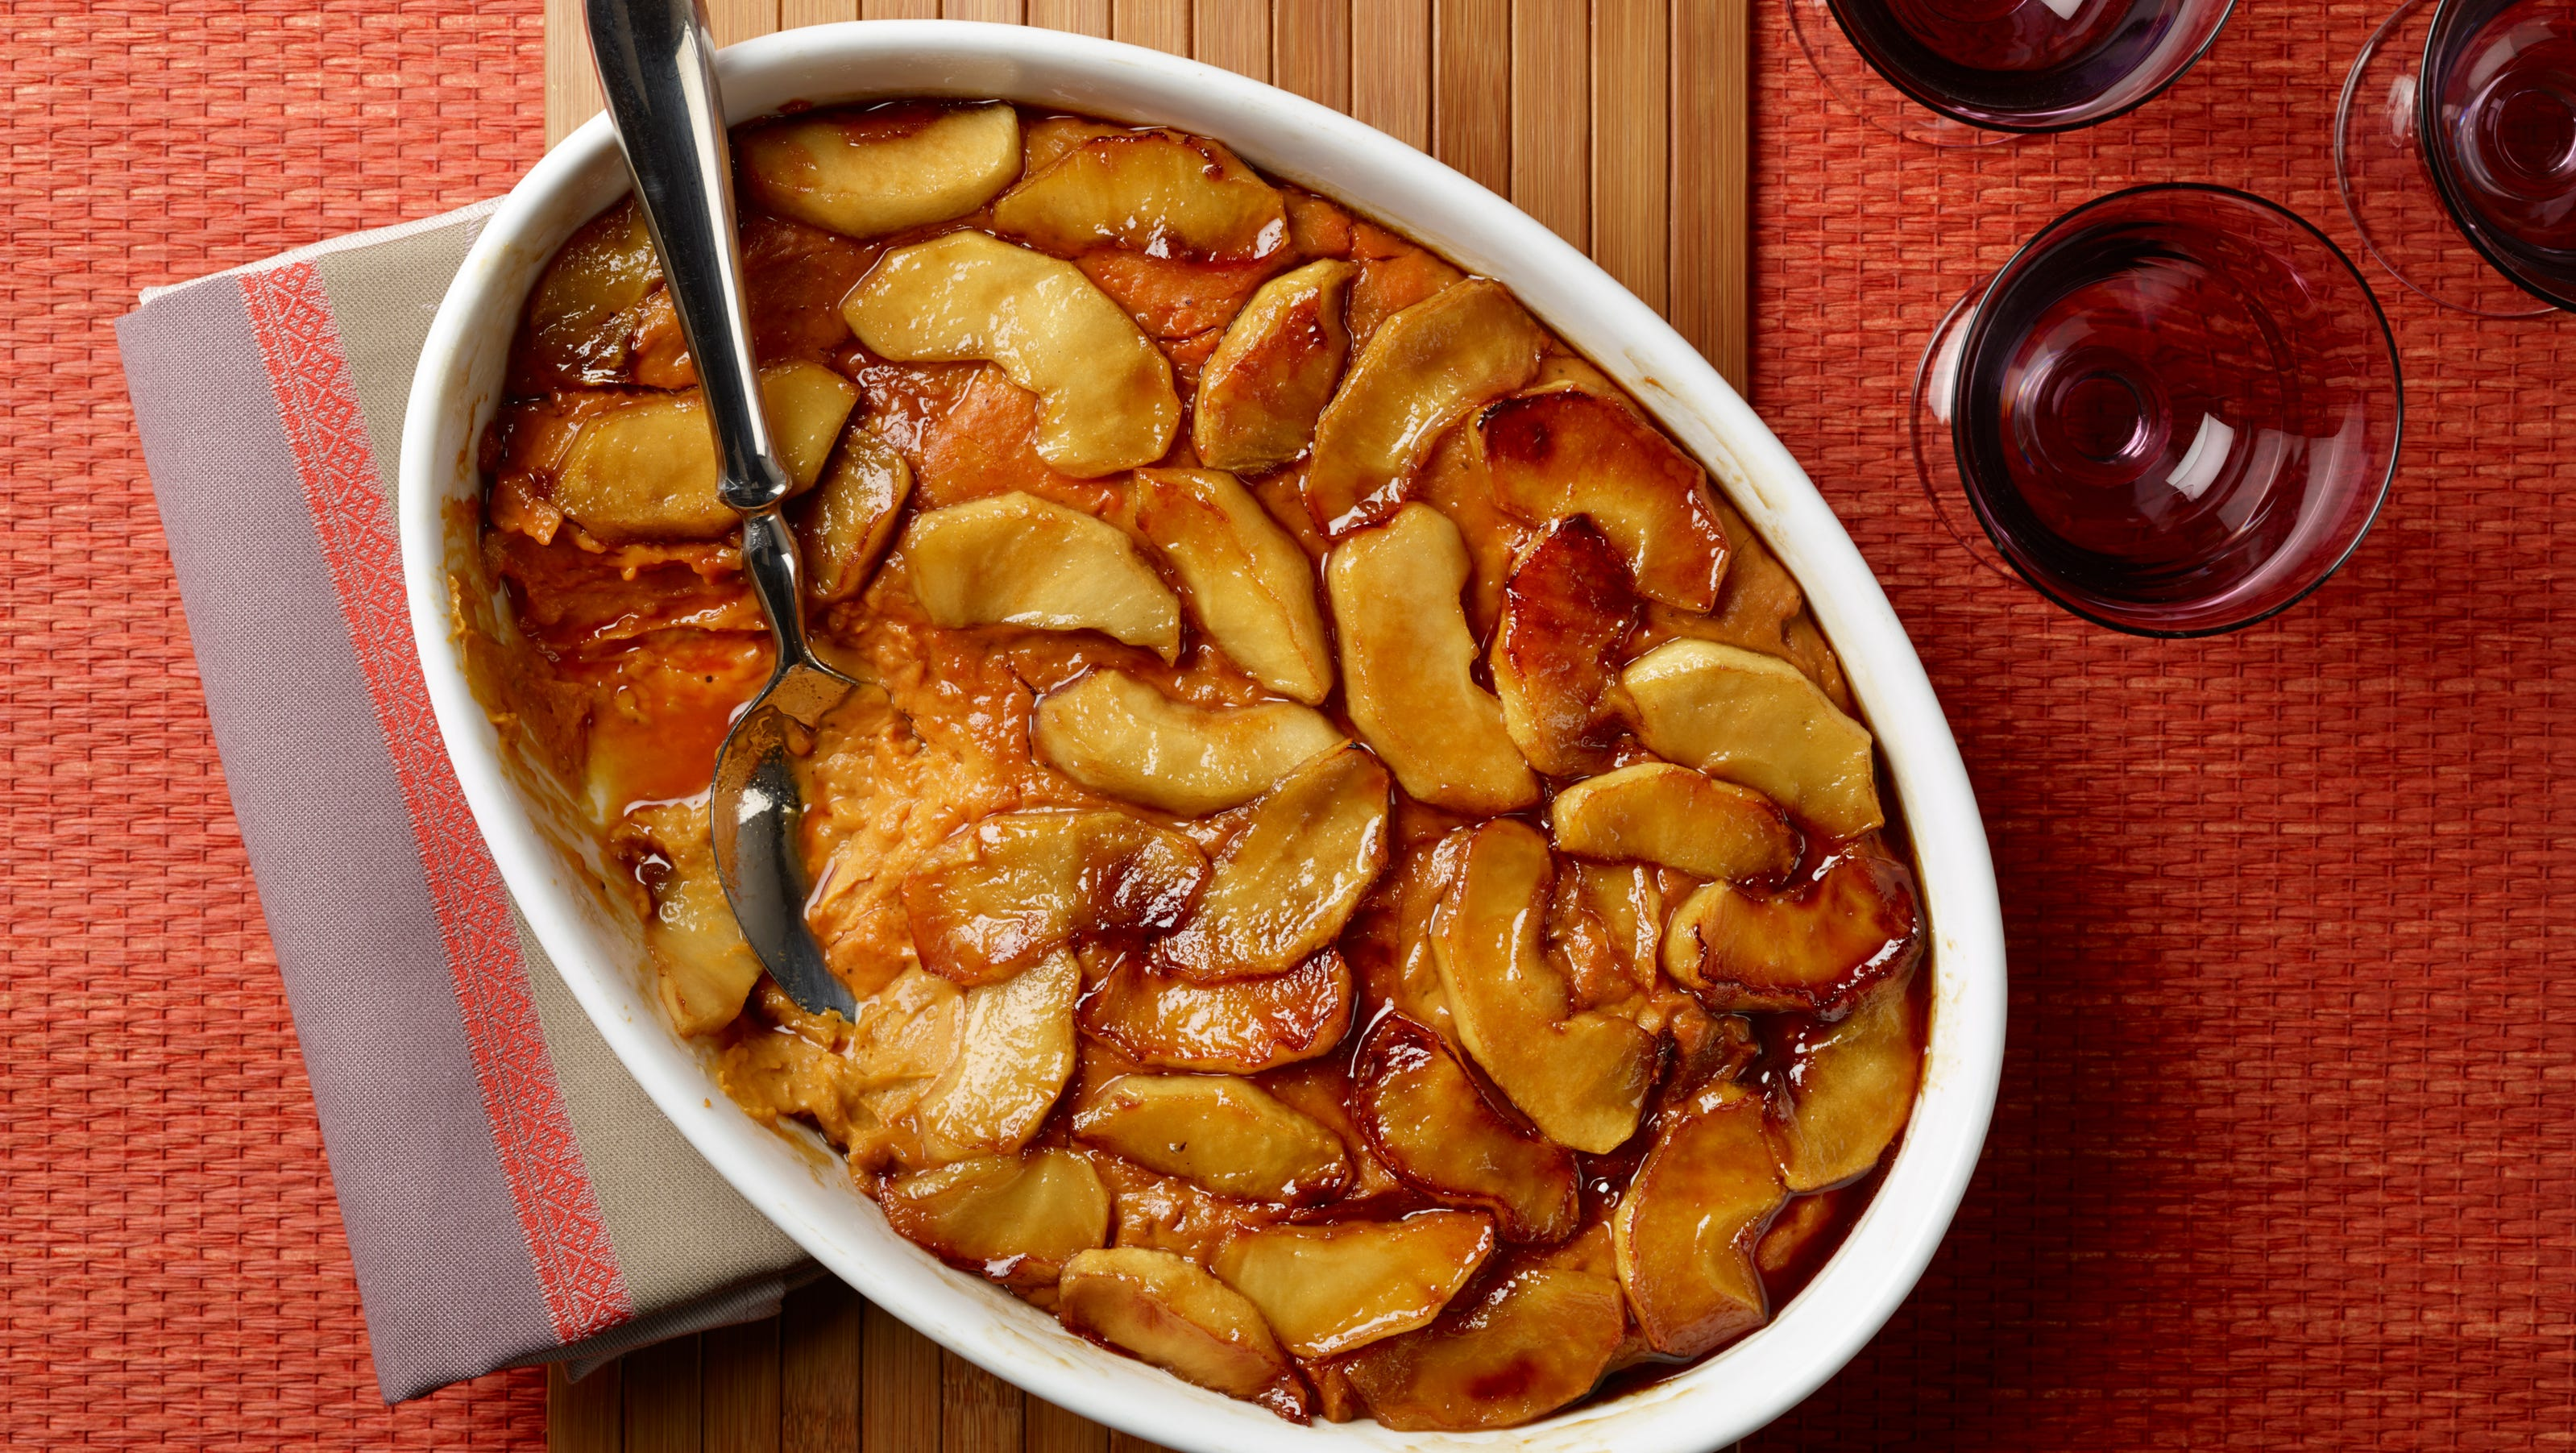 Recipe: Sweet Potato Casserole with Caramelized Apples